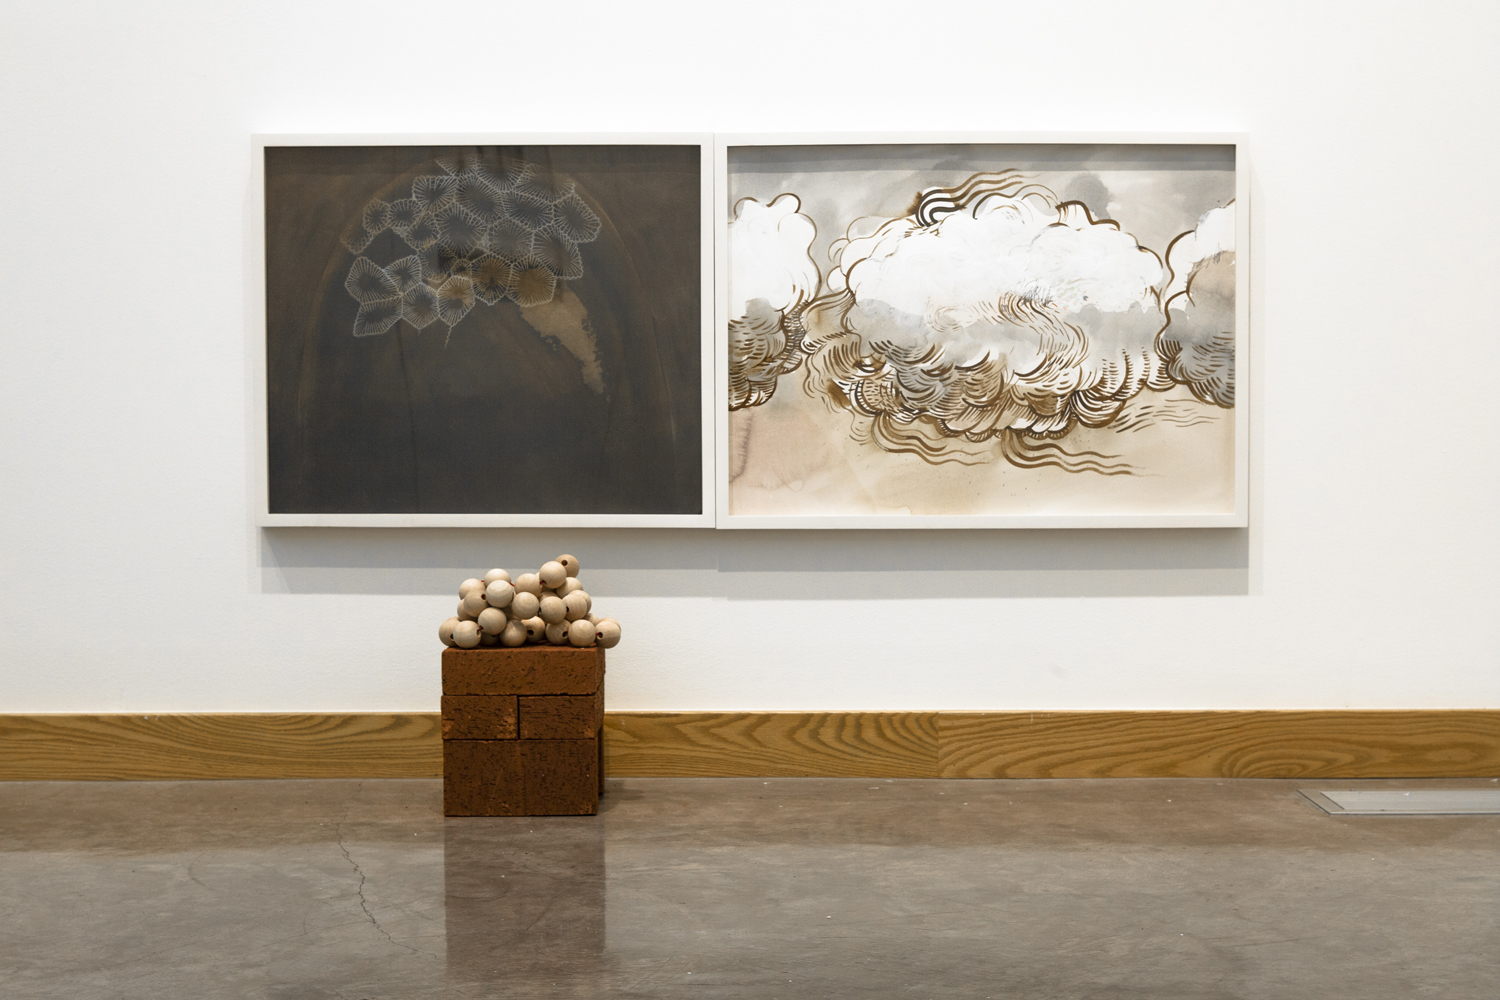 Gala Bent, Diptych (Loud Cloud + Domed Fossil), 2016, ink, acrylic, drawing pencils, gouache and graphite on paper, 50 x 22 inches, Whitworth University Installation